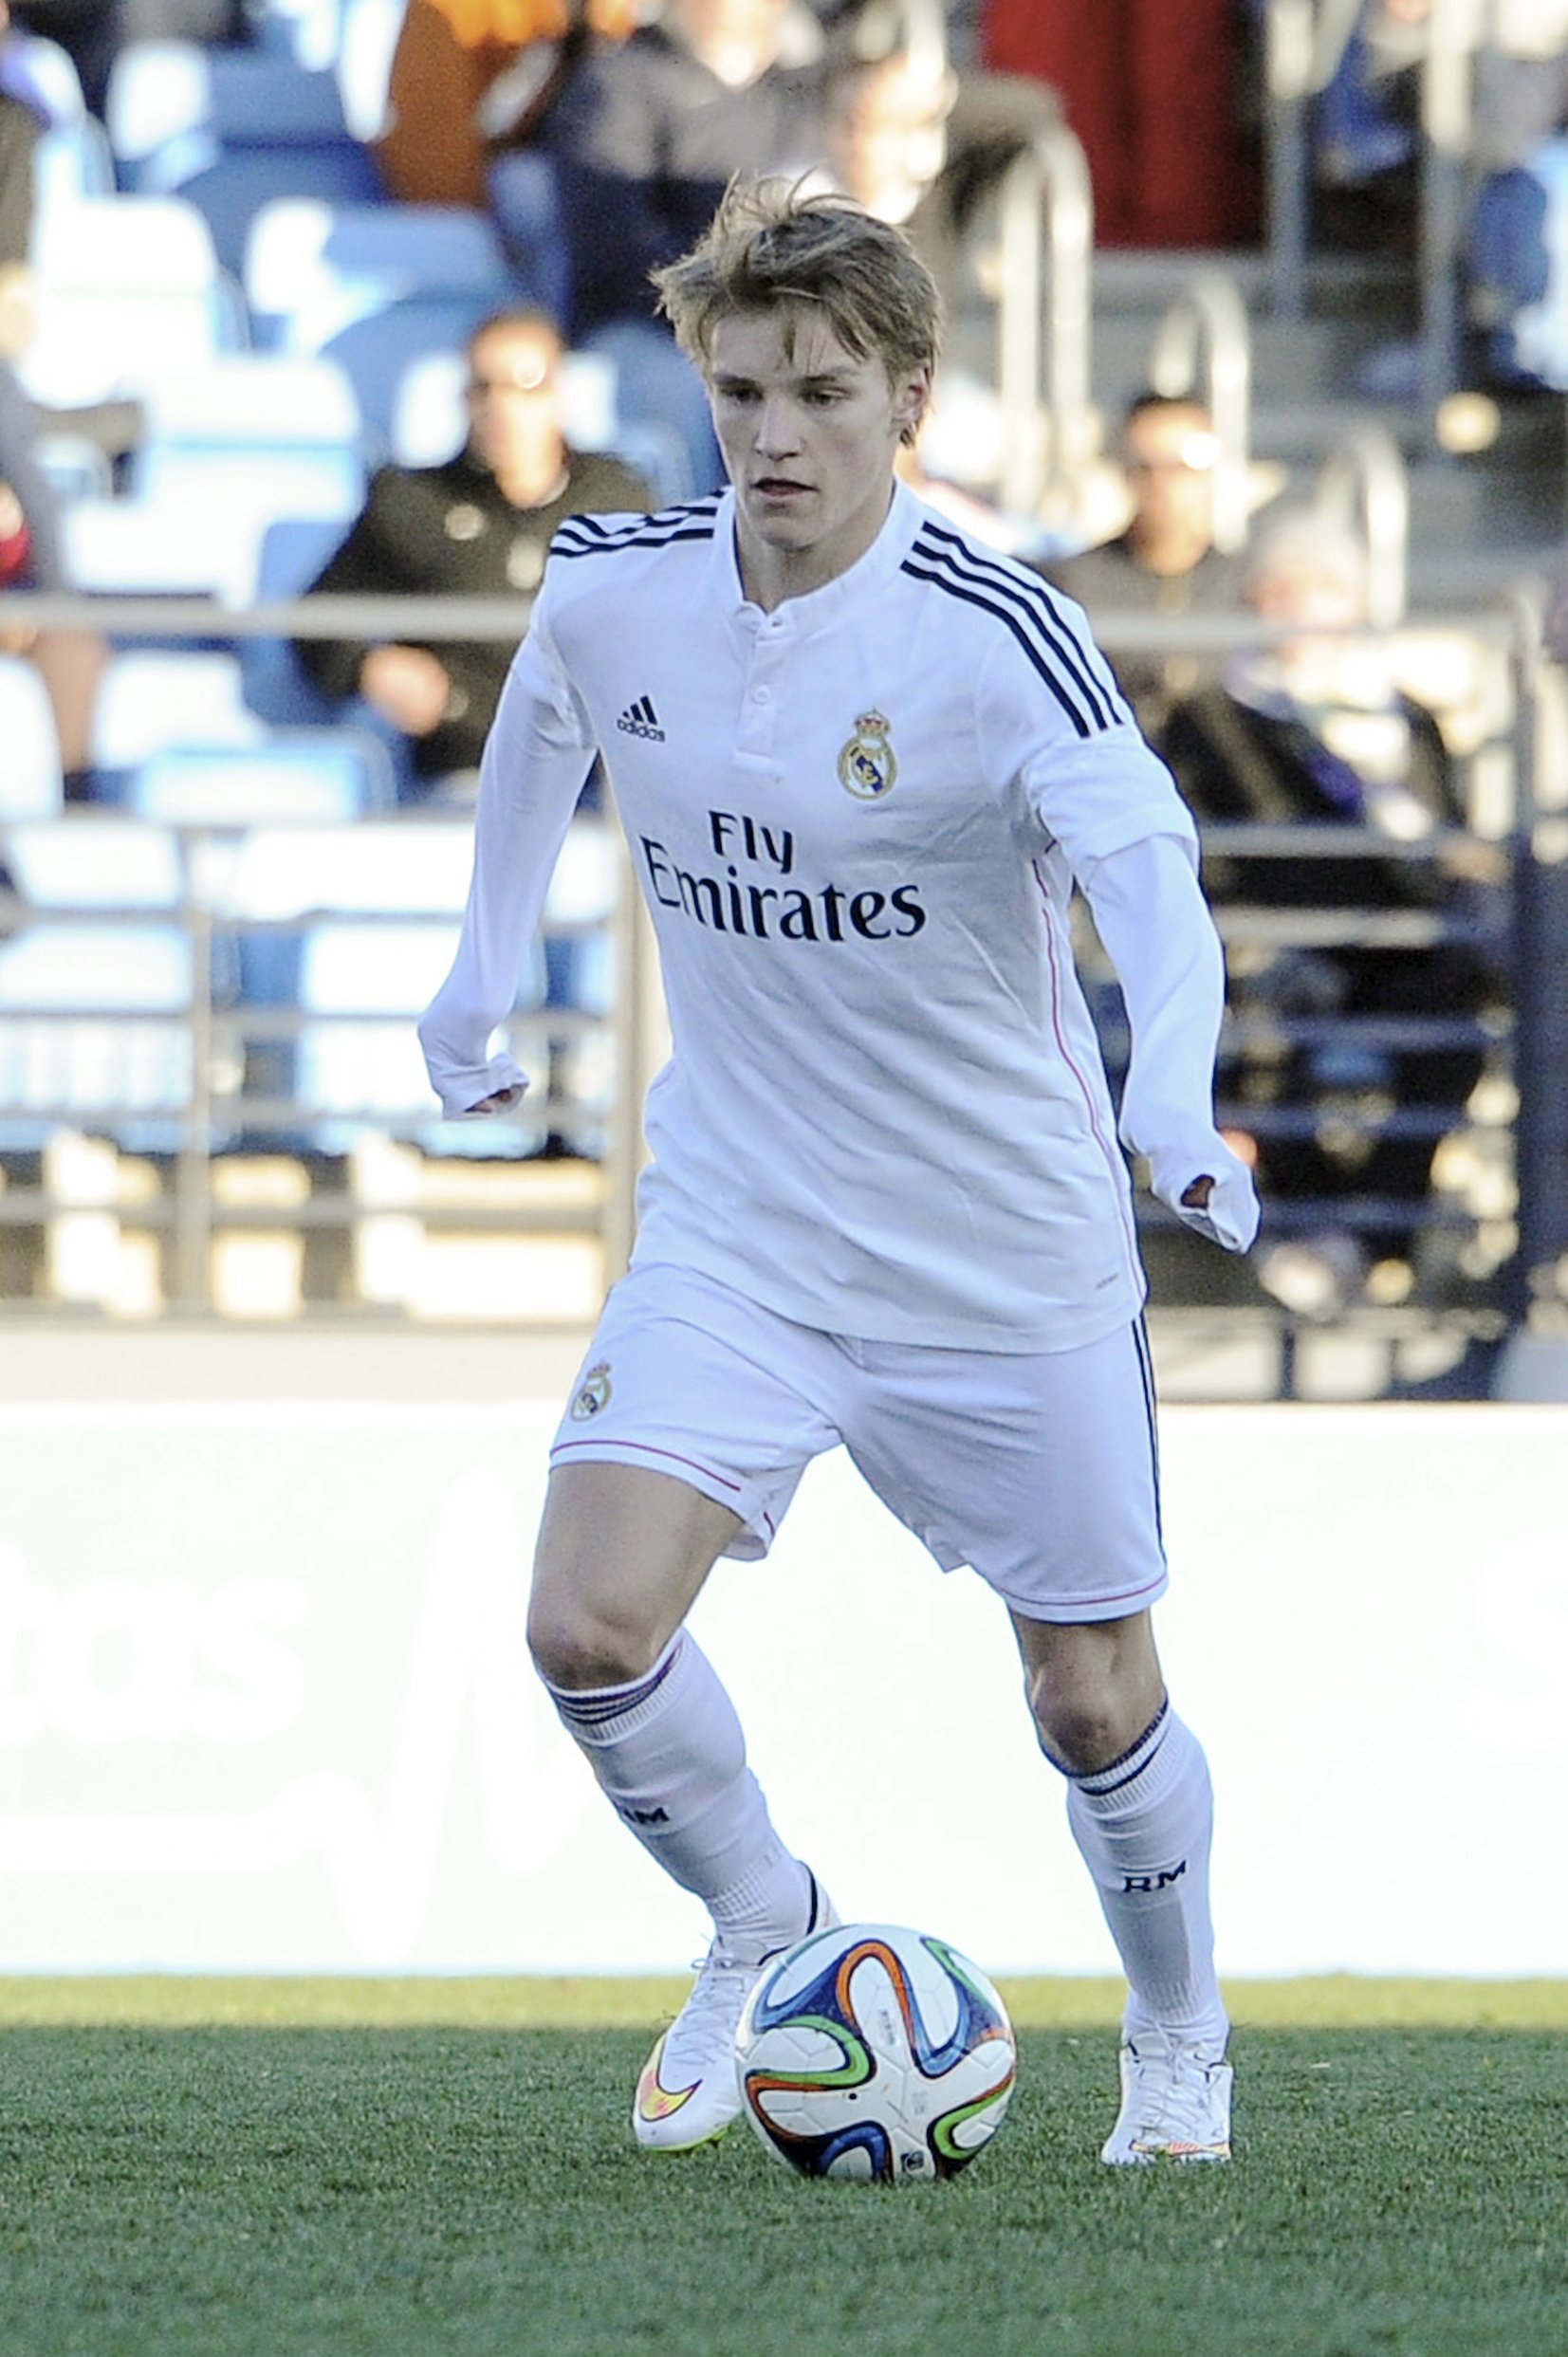 The 19-year old son of father Hans Erik Ødegaard and mother(?) Martin Ødegaard in 2018 photo. Martin Ødegaard earned a  million dollar salary - leaving the net worth at  million in 2018